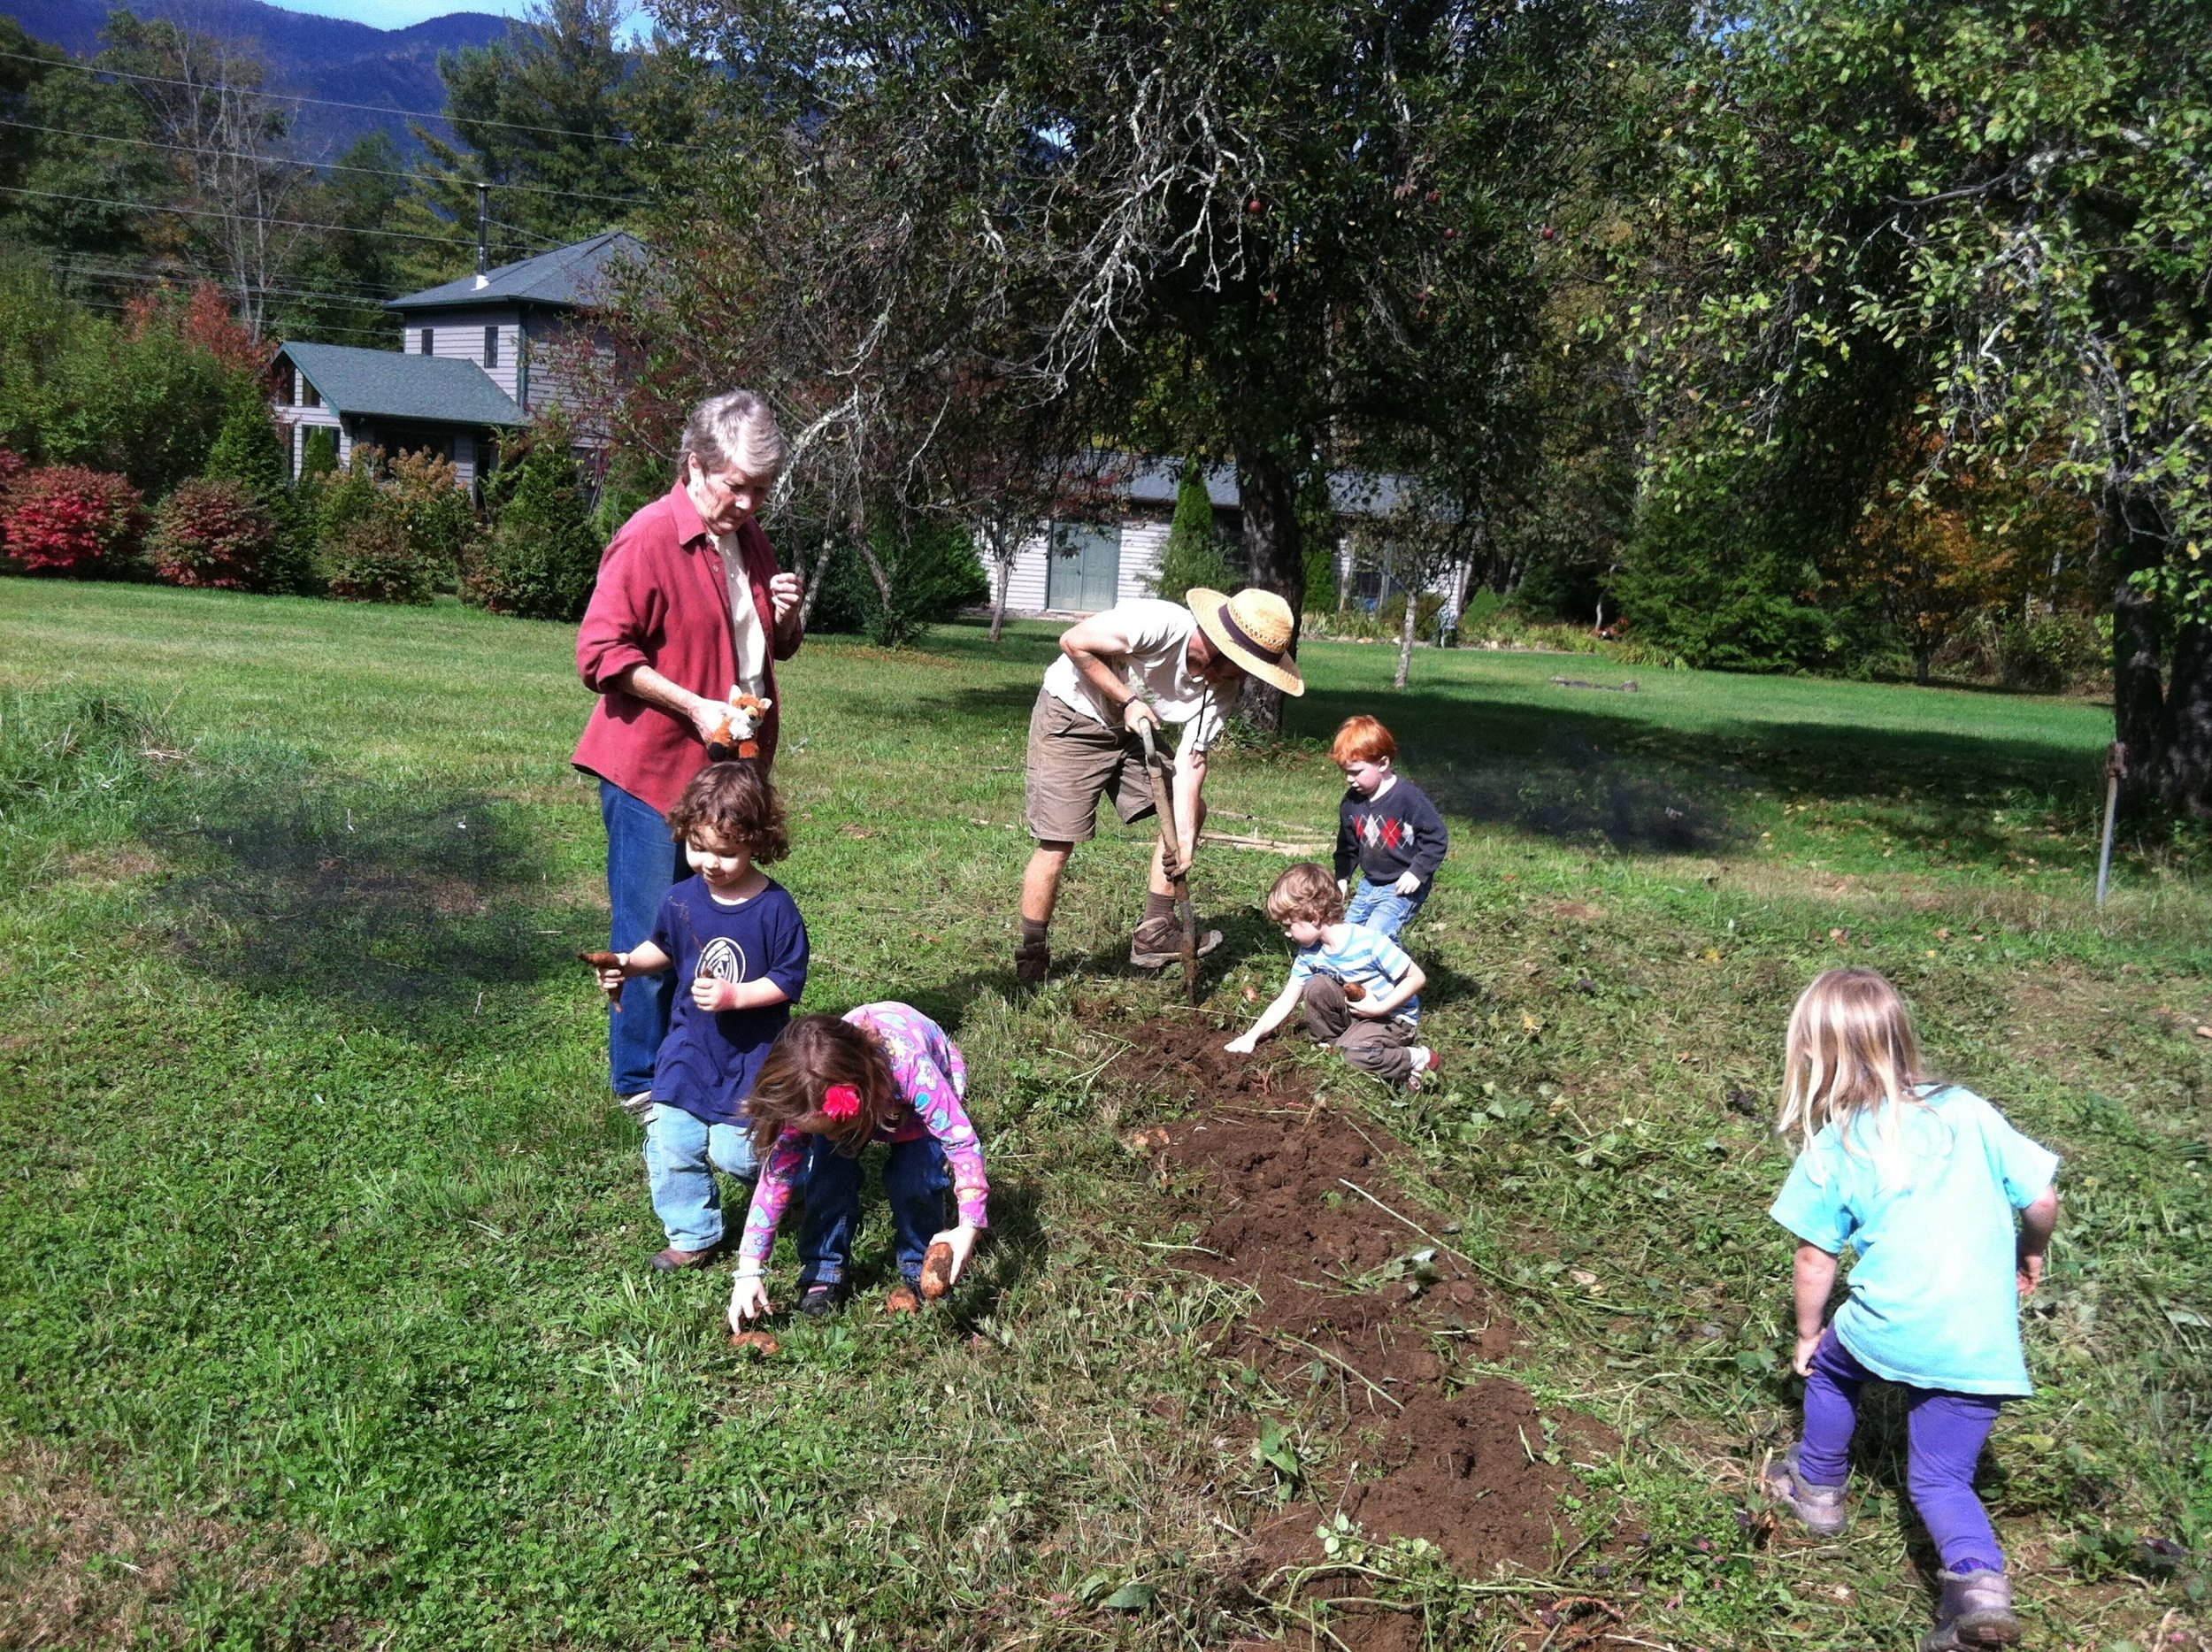 the children work joyously at harvesting sweet potatoes